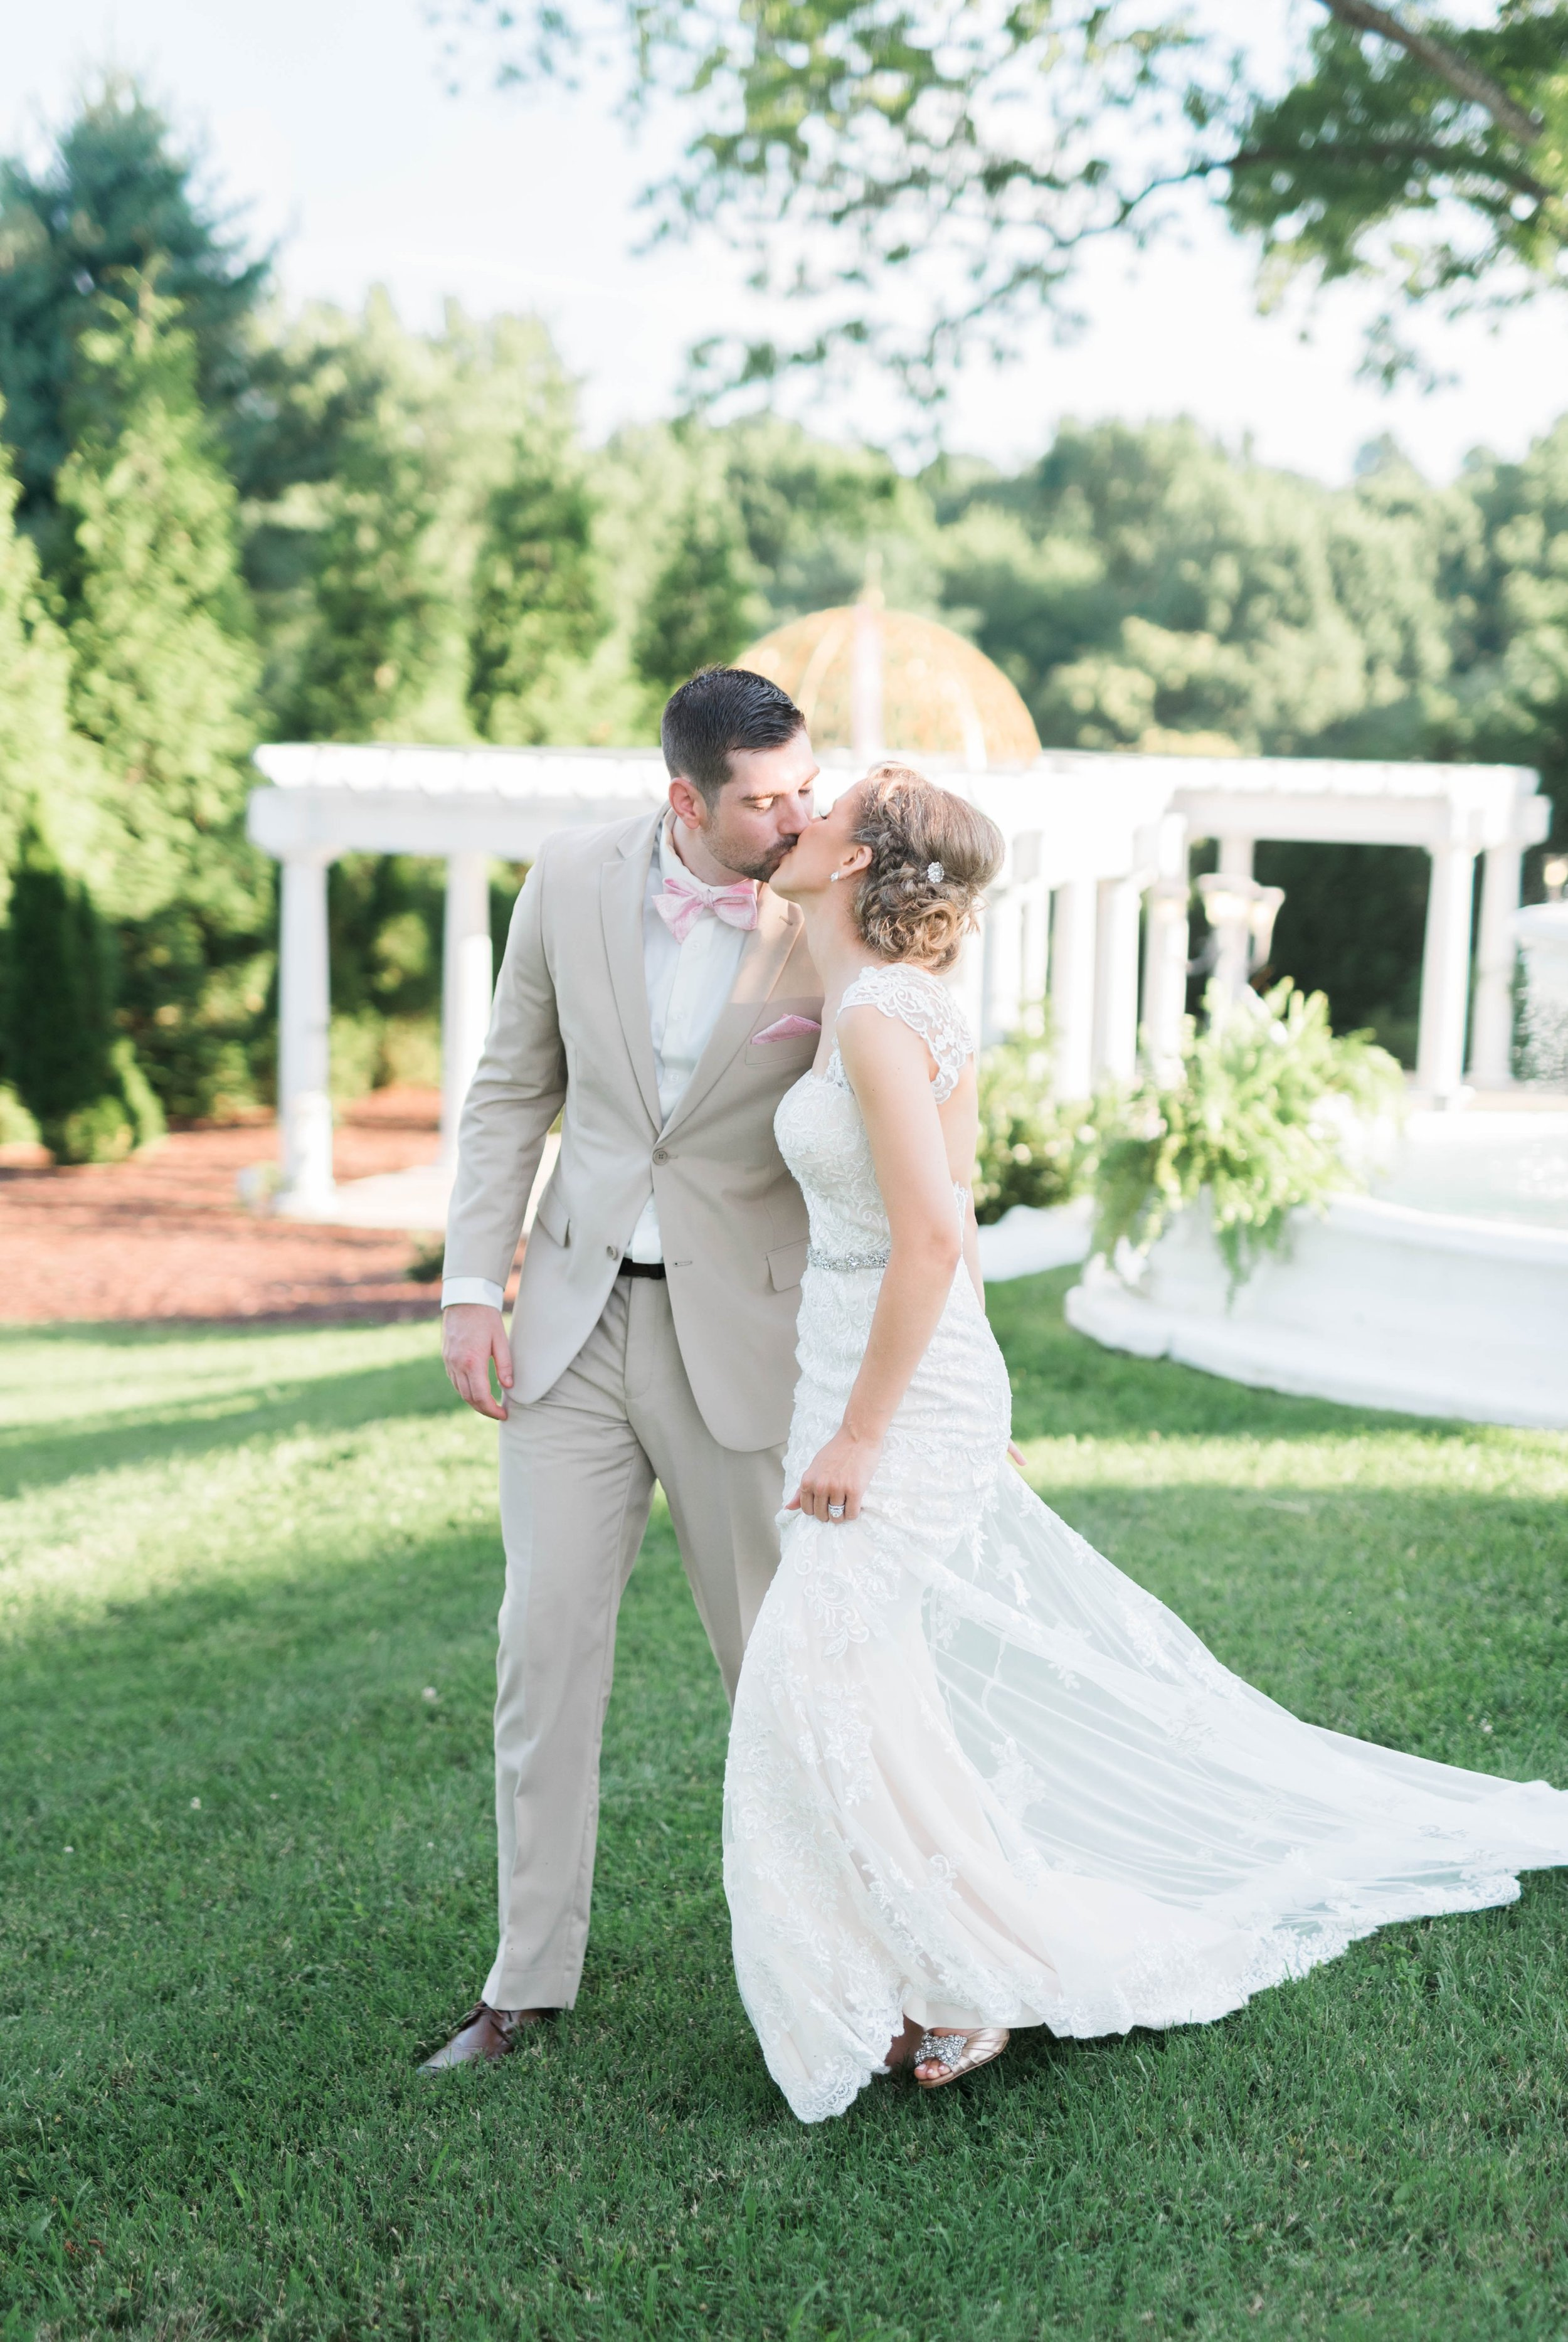 BedfordColumns_EntwinedEvents_Lynchburgwedding_VIrginiaweddingphotographer_ALlisonNIck 10.jpg